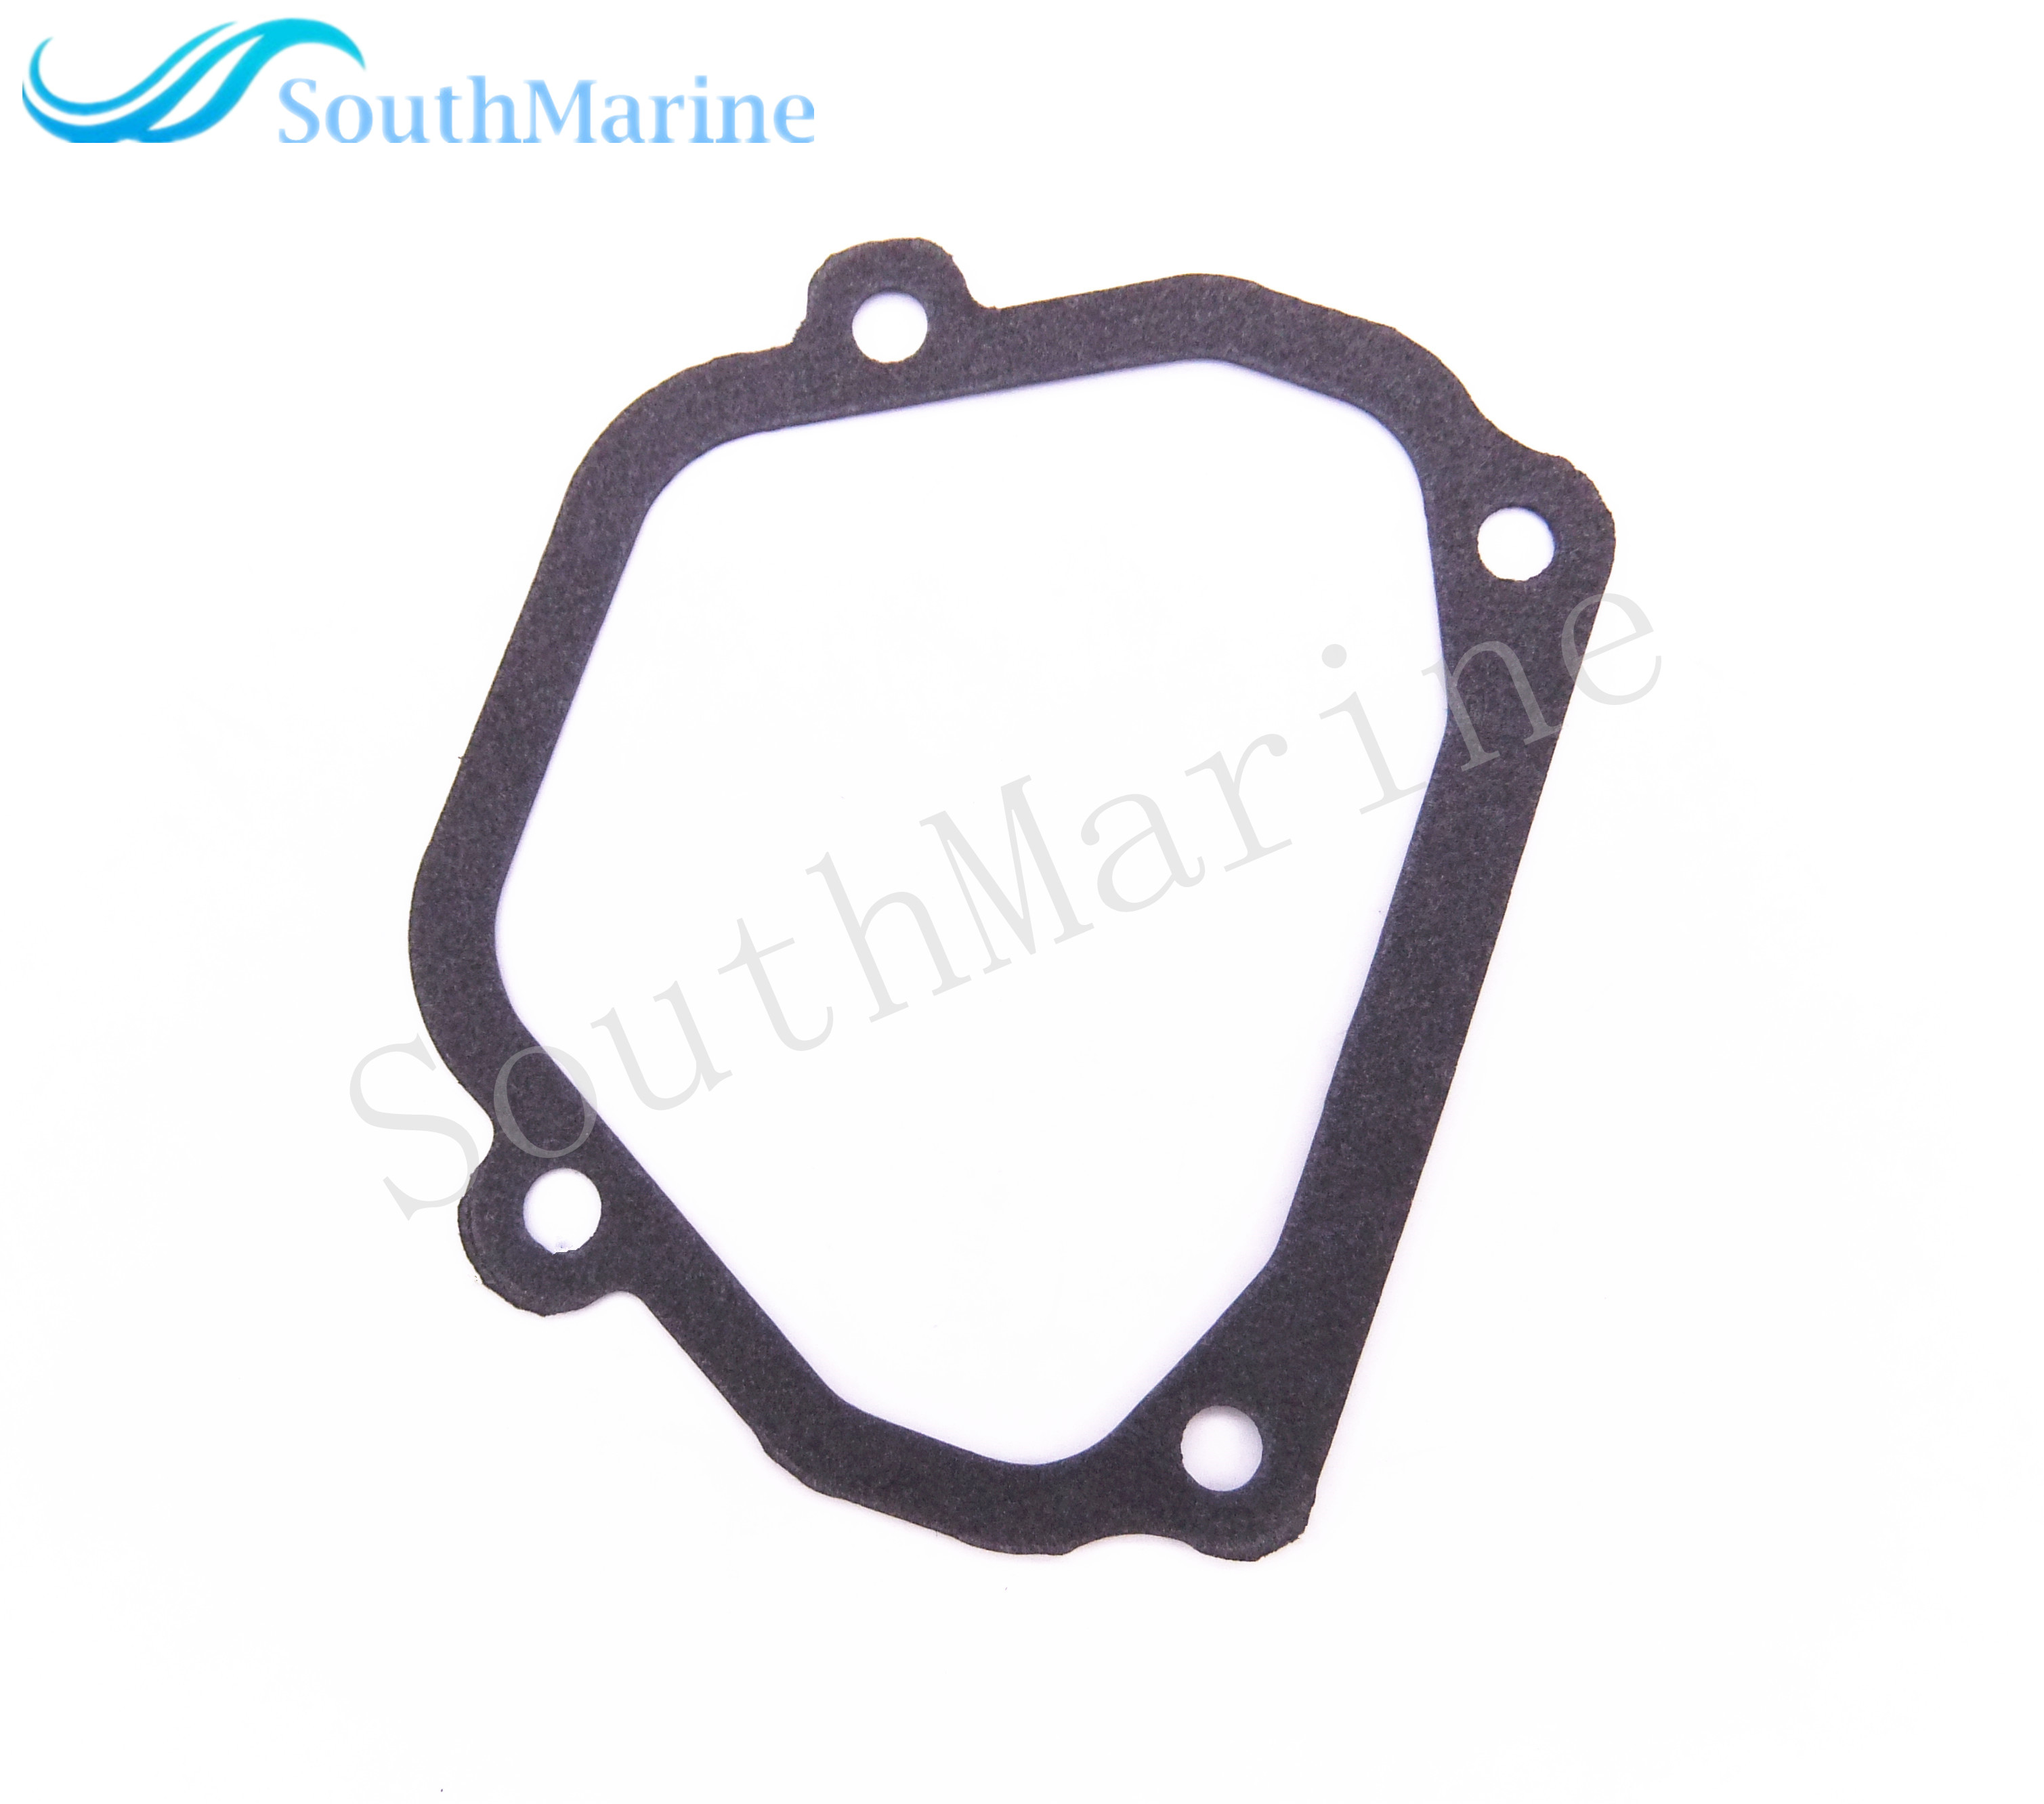 67D-11191-00 Cover Head Gasket Boat Engine for Yamaha 4-Stroke F4 Outboard Motor Free Shipping